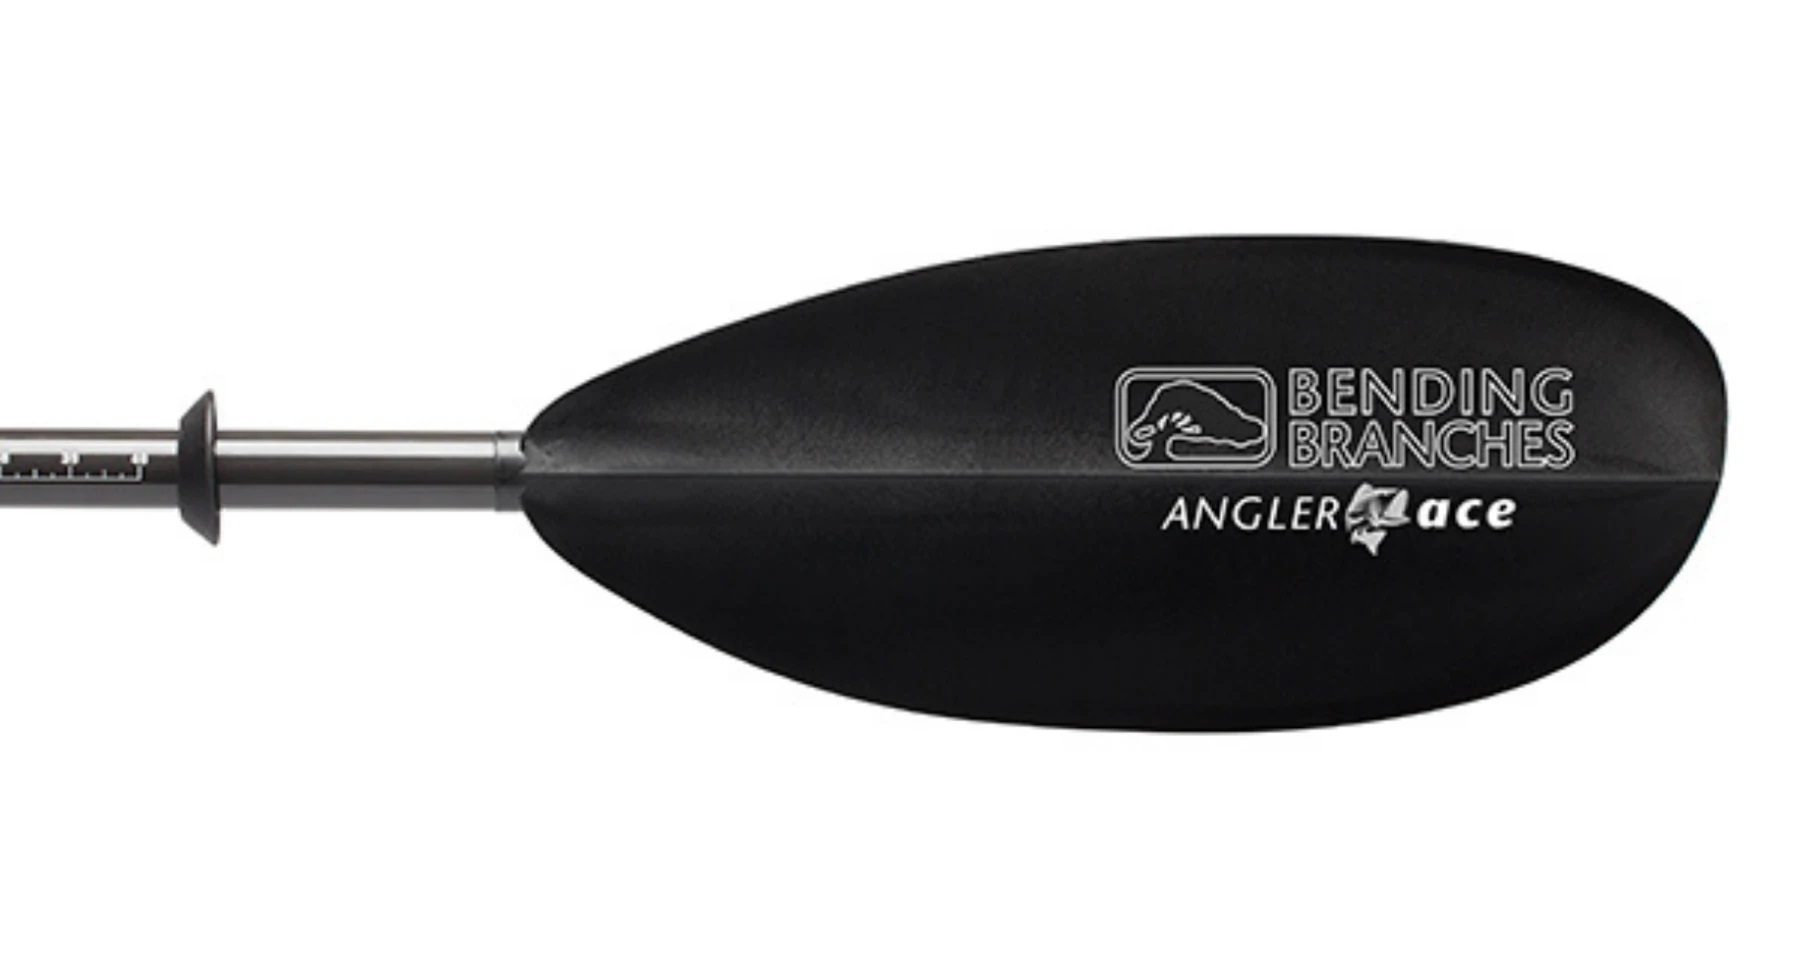 Bending Branches Angler Ace